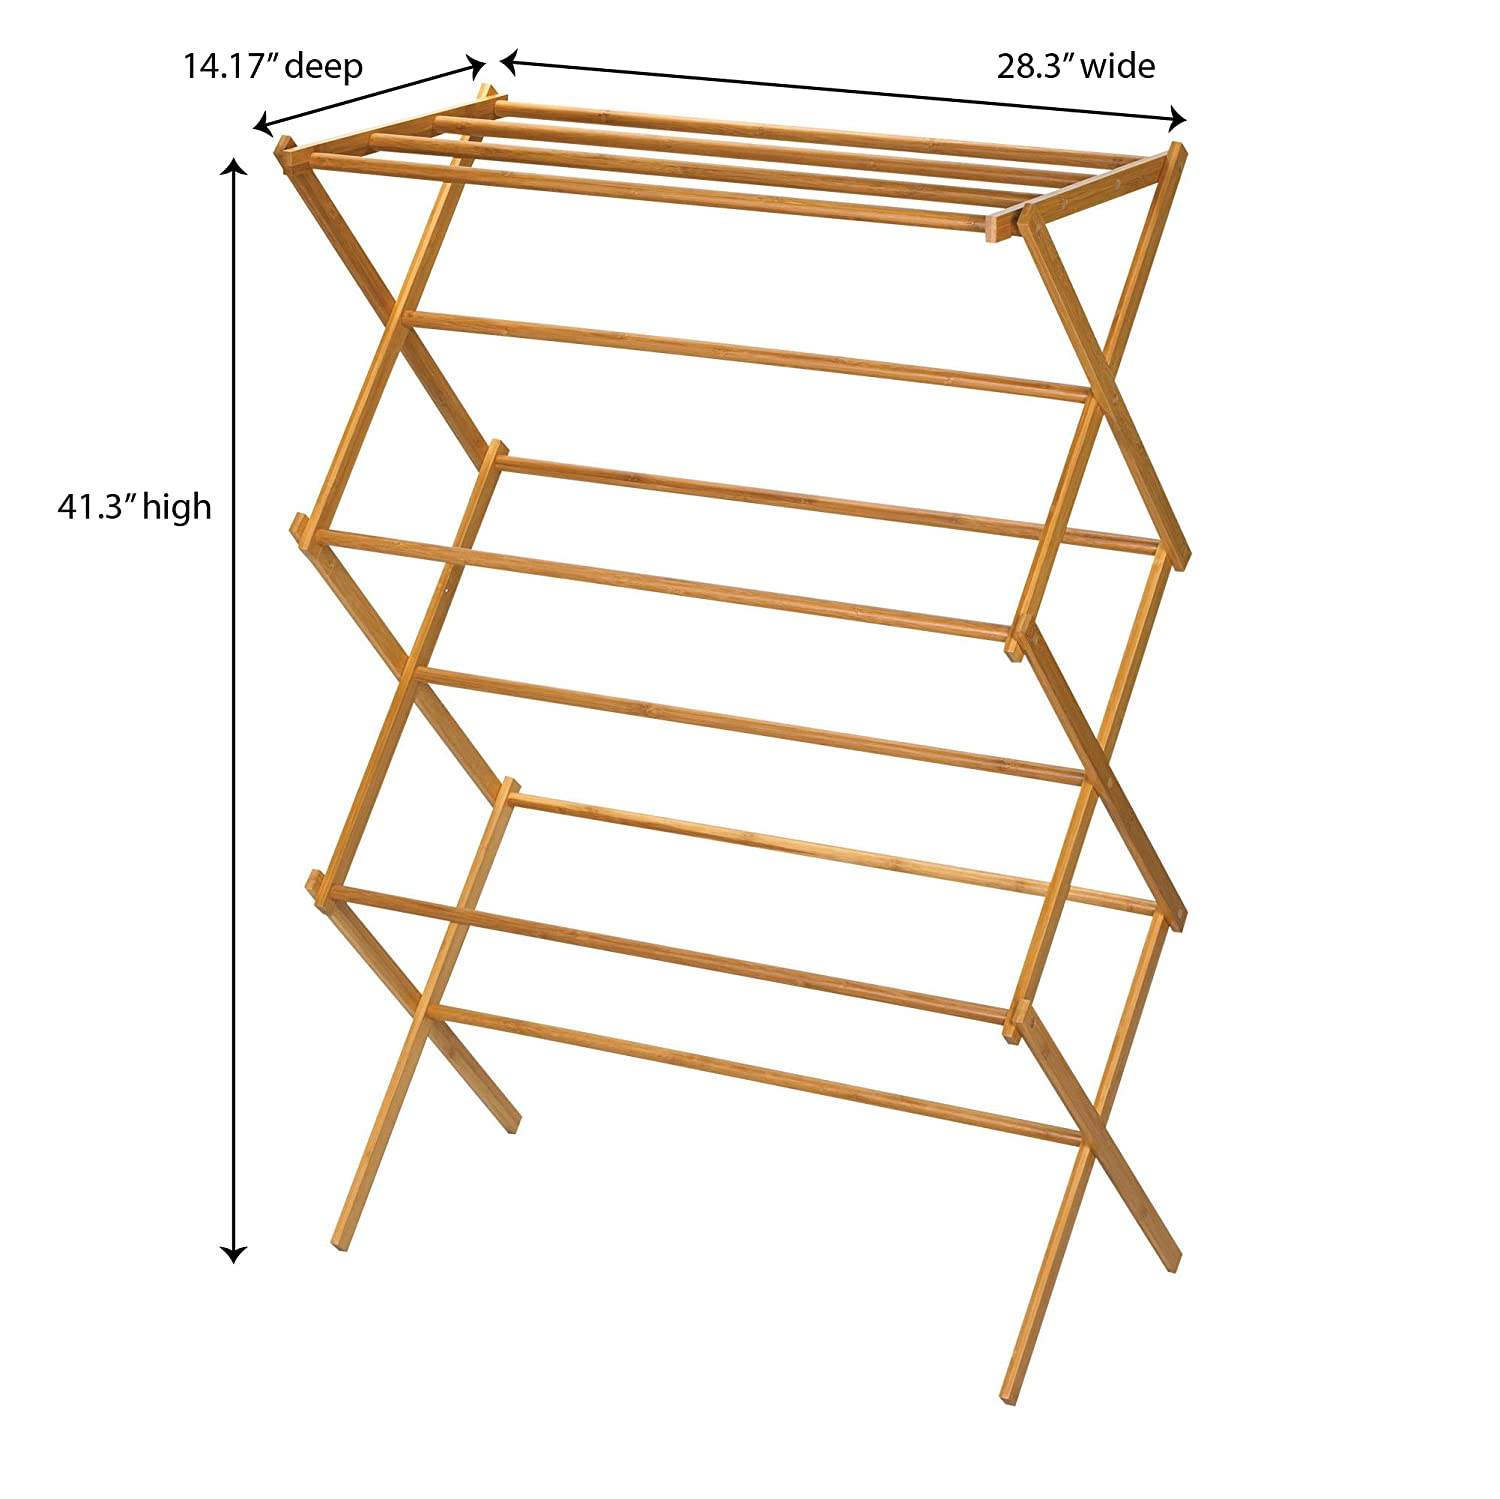 wooden clothes drying rack tall indoor folding bamboo dry. Black Bedroom Furniture Sets. Home Design Ideas